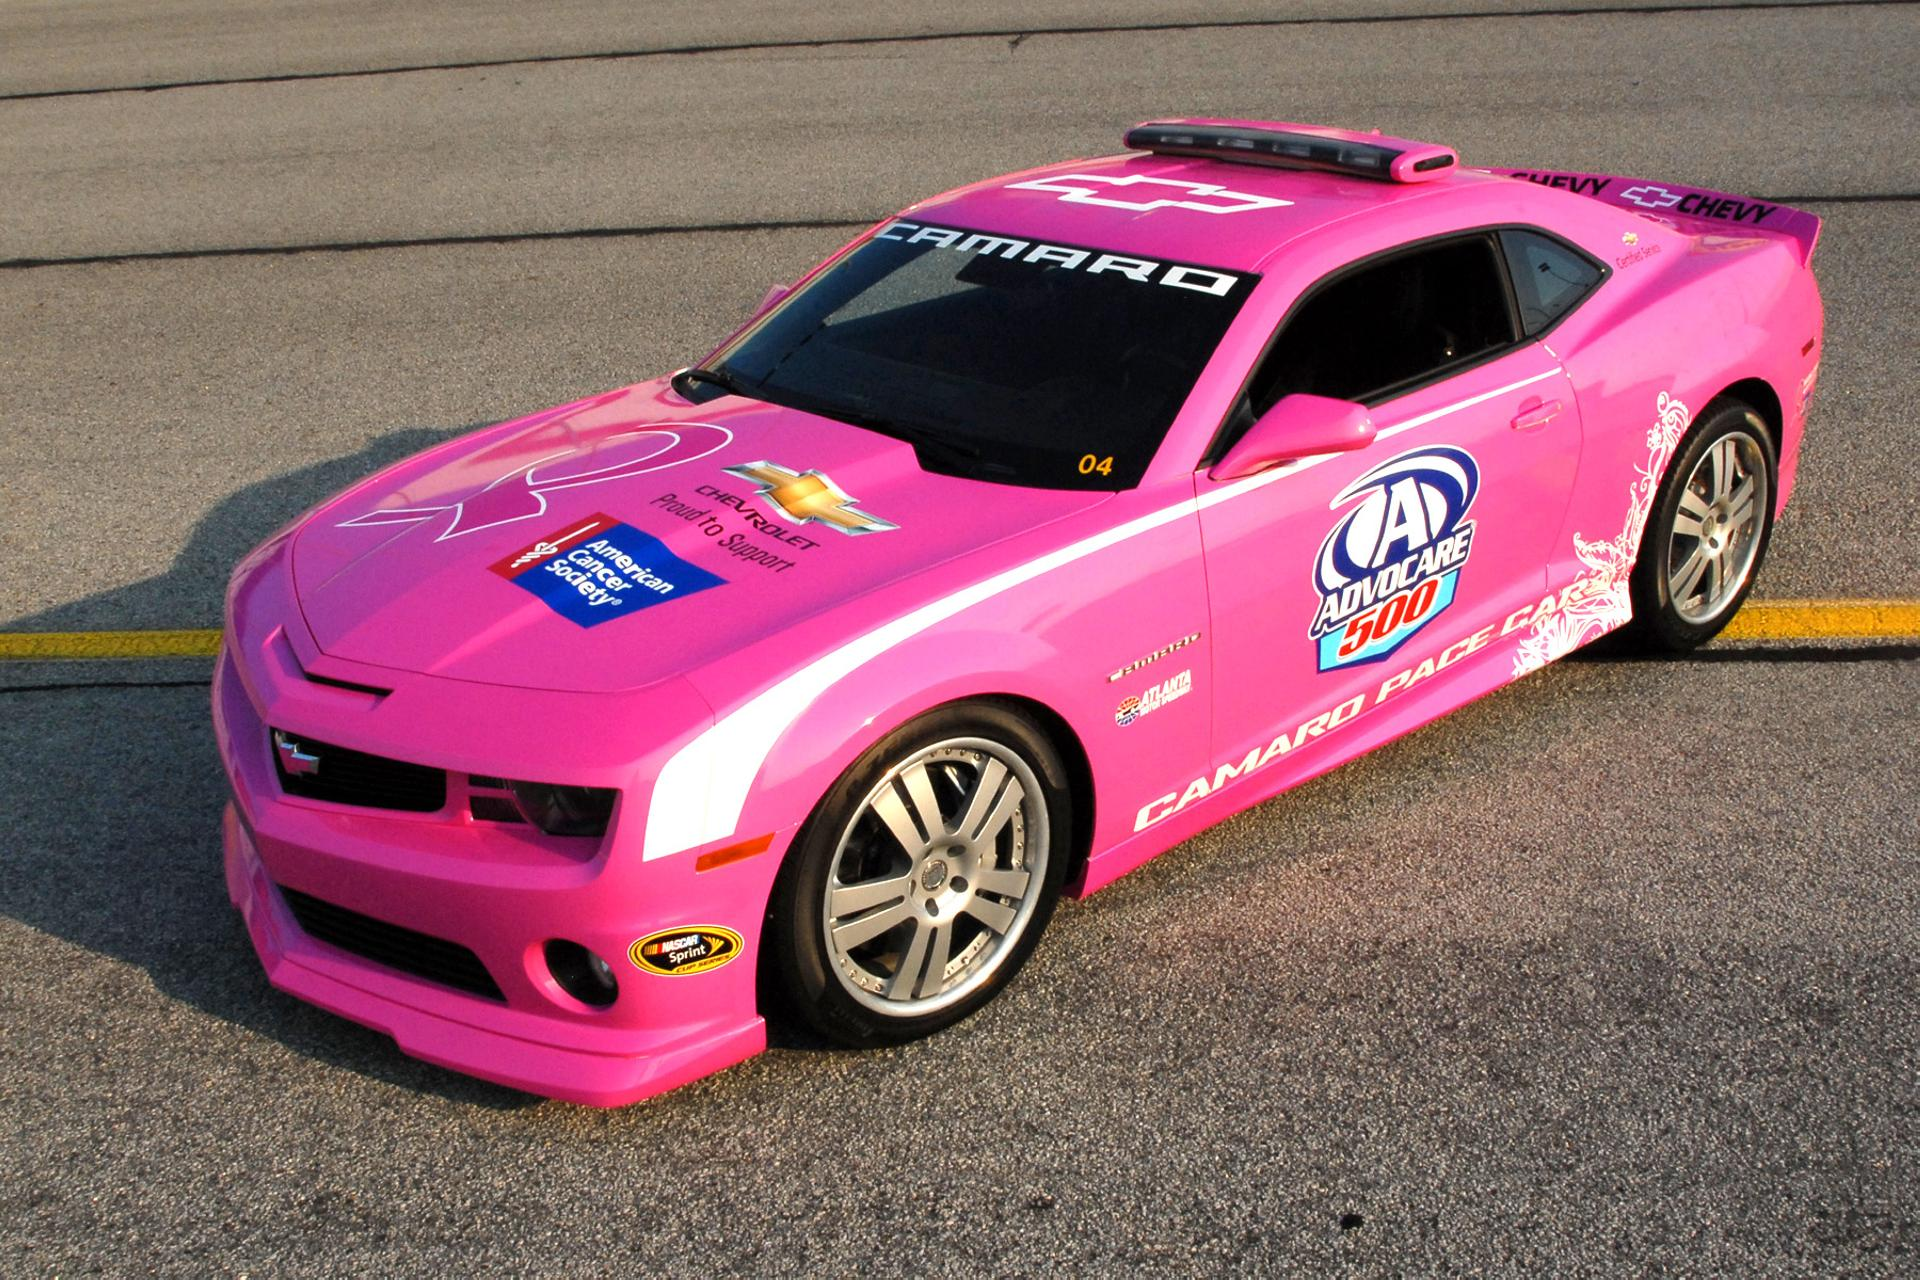 2012 Chevrolet Pink Camaro Pace Car News and Information